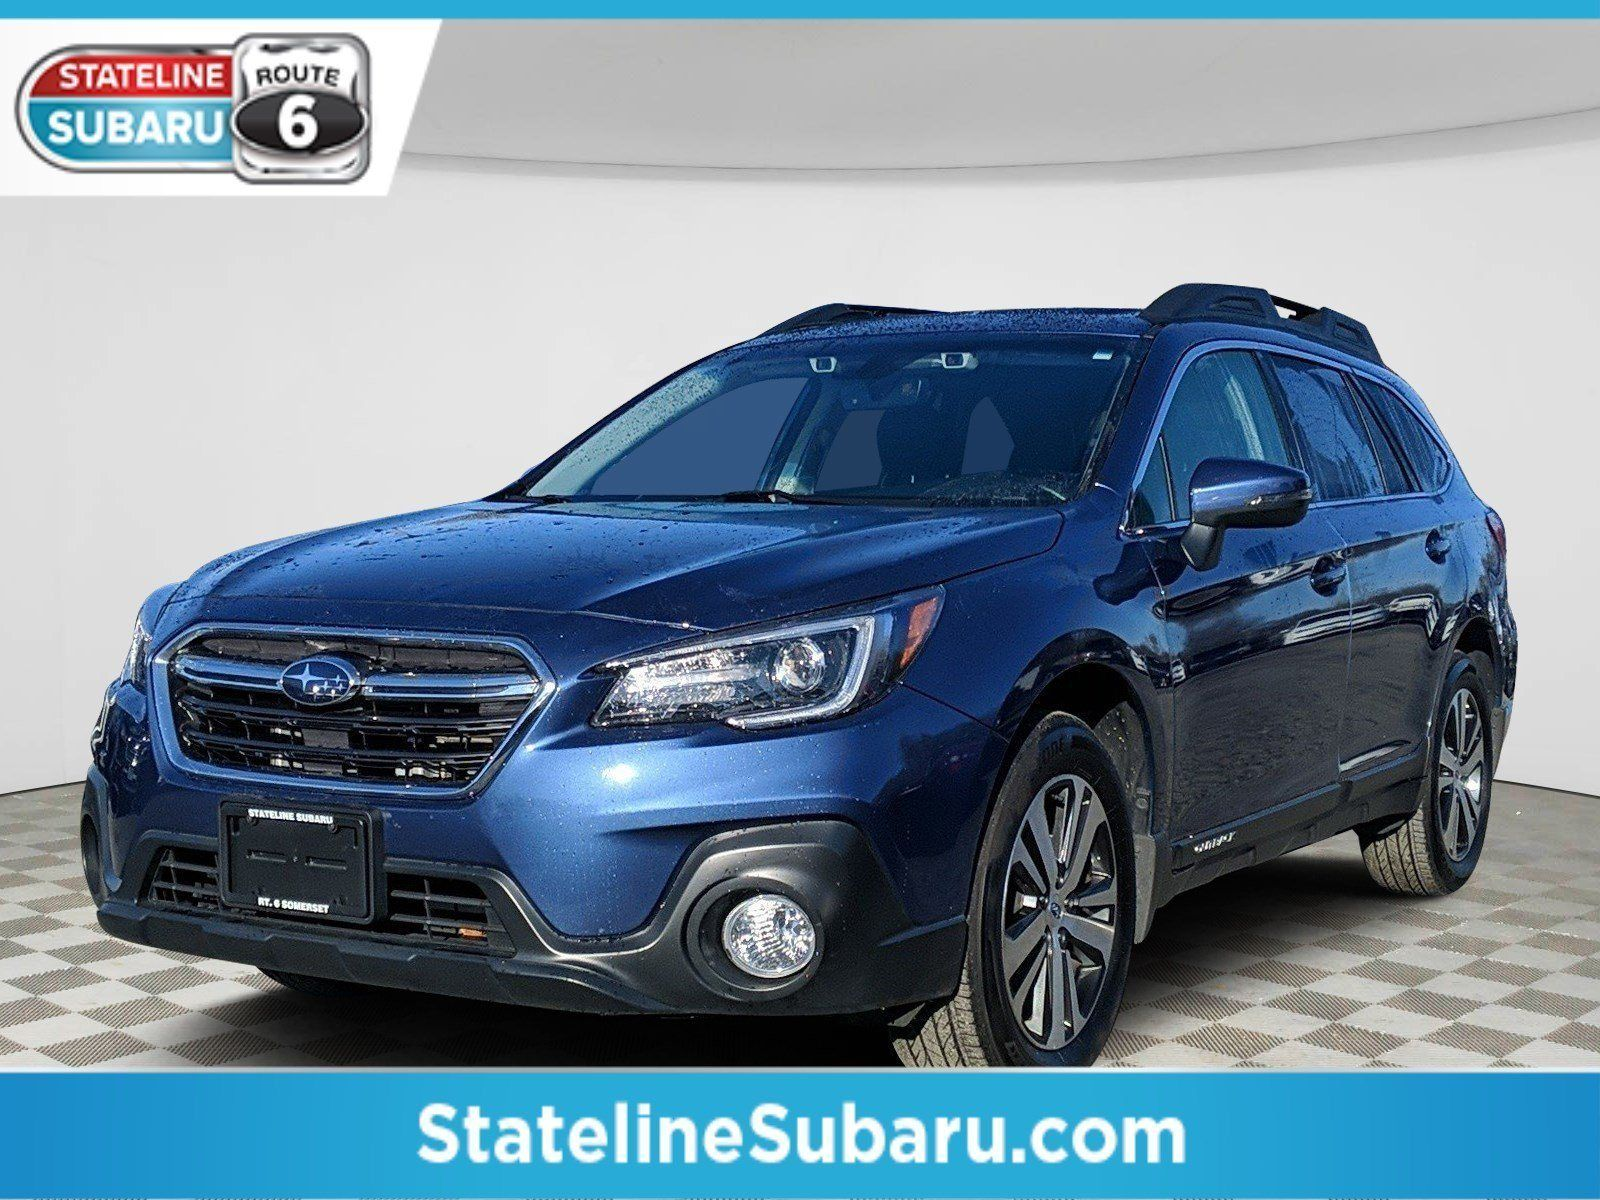 2020 Subaru Outback Price Design And Review In 2020 Subaru Outback Subaru Subaru Outback For Sale